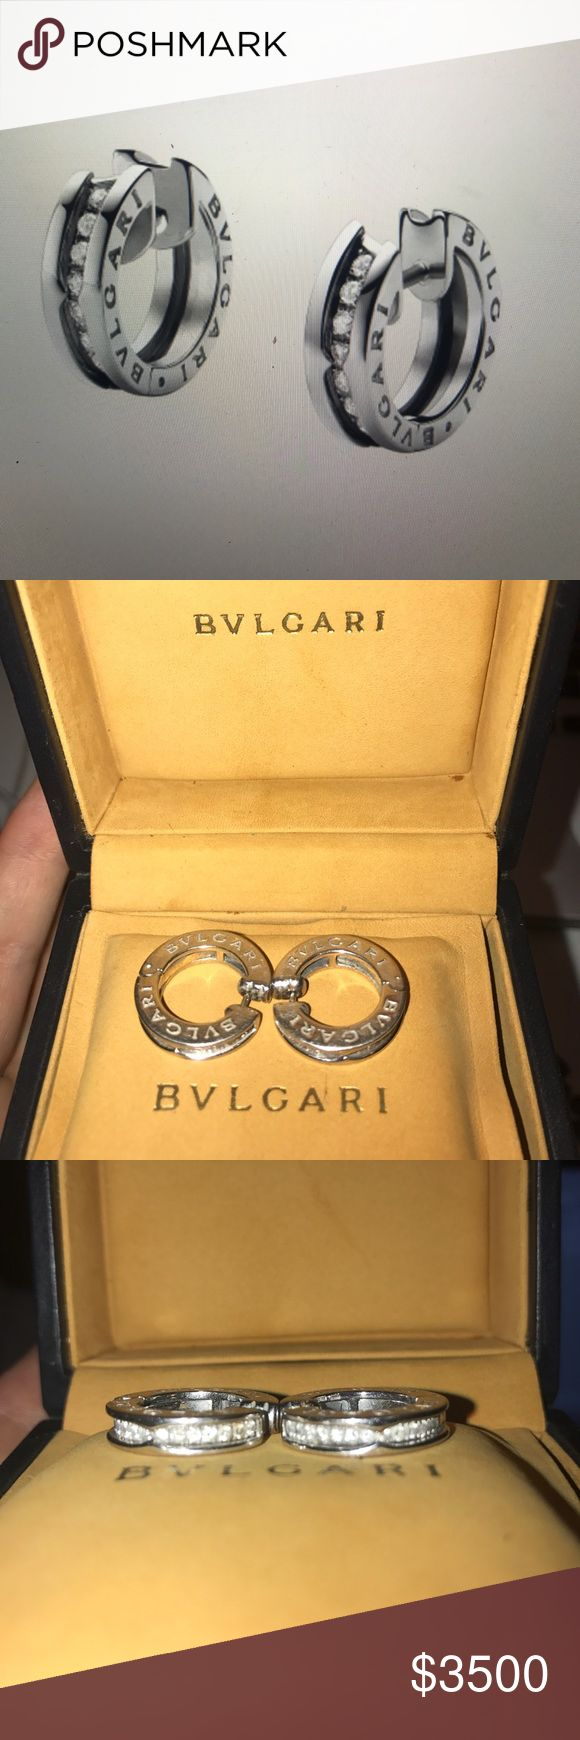 Bulgari B.ZERO1 Bulgari B.ZERO1 small 18kt white gold pavé diamond hoop earrings. I bought them in Europe with 20% tax, here they cost 3,950+tax = $4300. In selling them because I want the new ones. Bulgari Jewelry Earrings